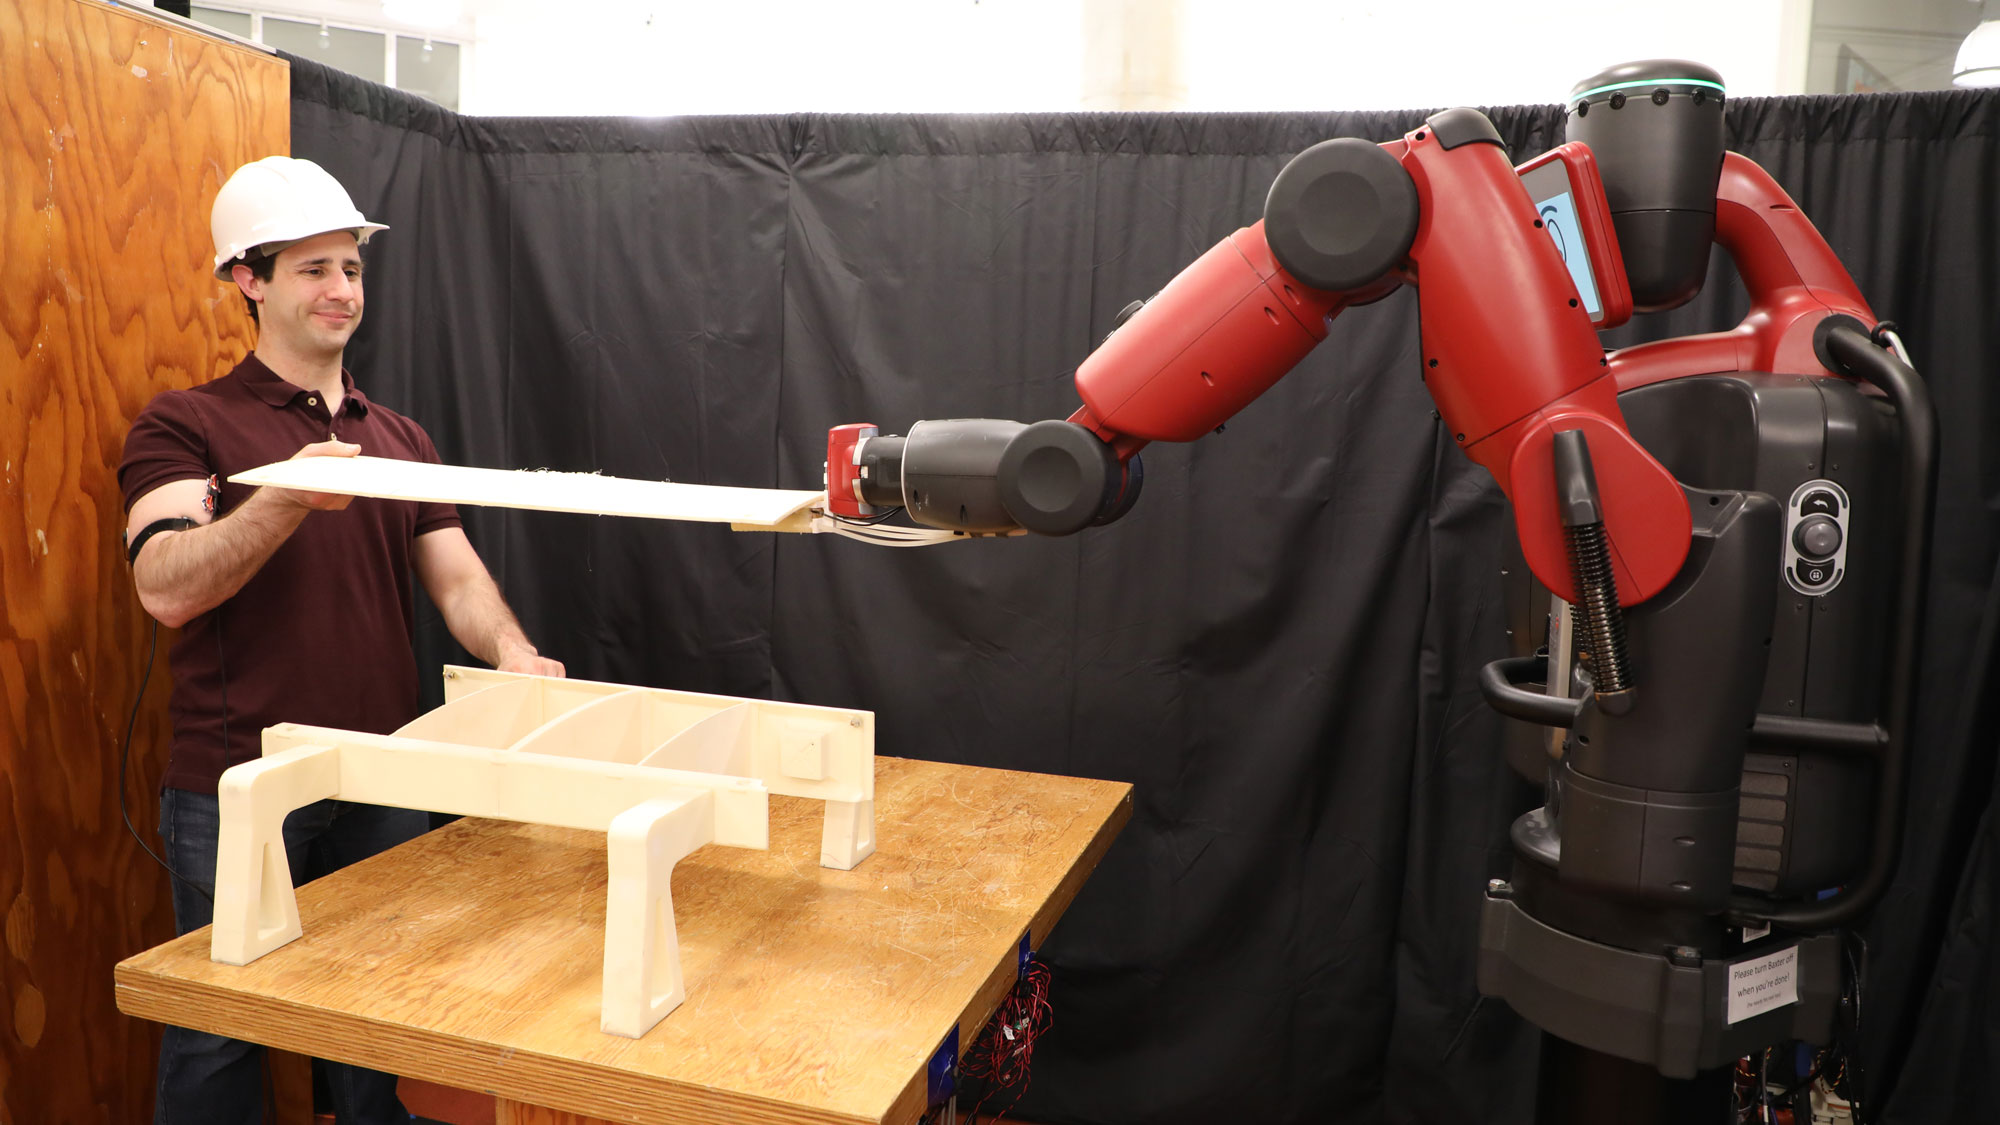 This robot watches you flex to learn to be a better teammate